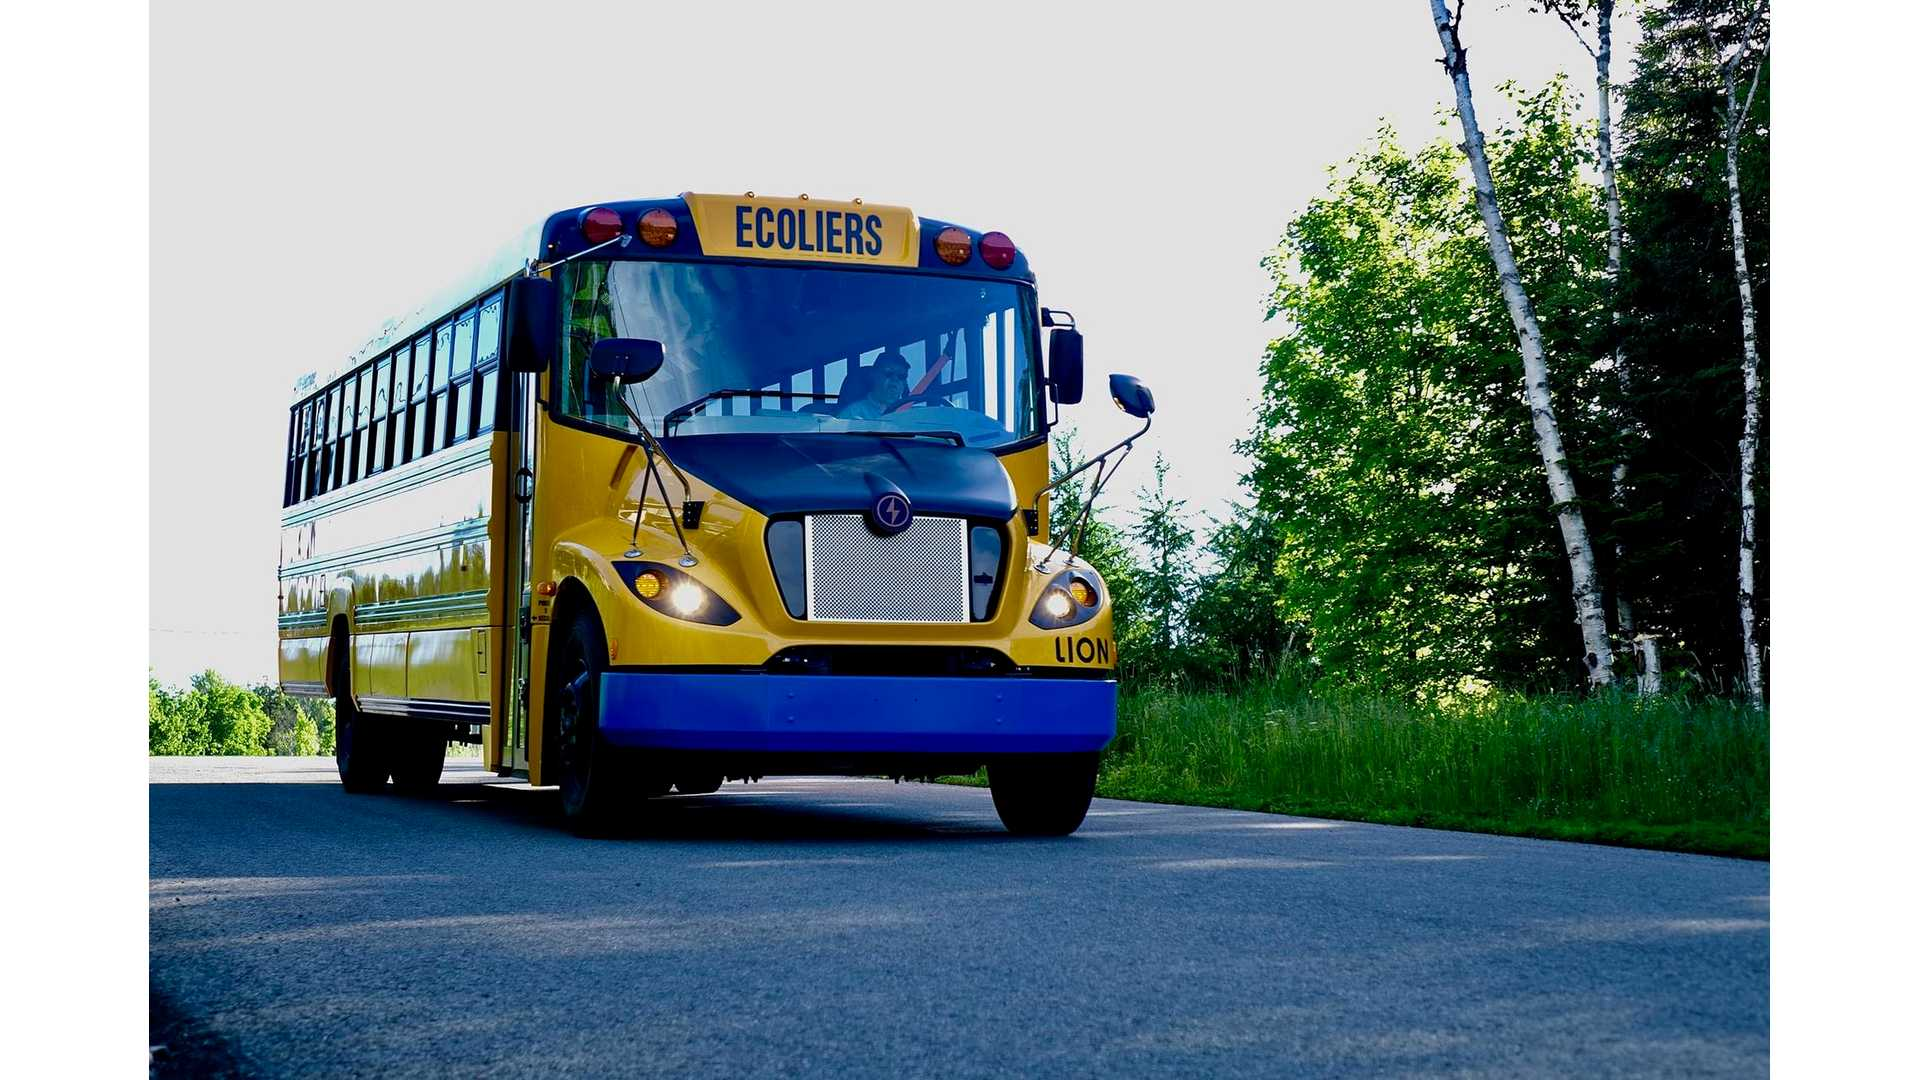 Lion Logs Largest Electric School Bus Order In North America